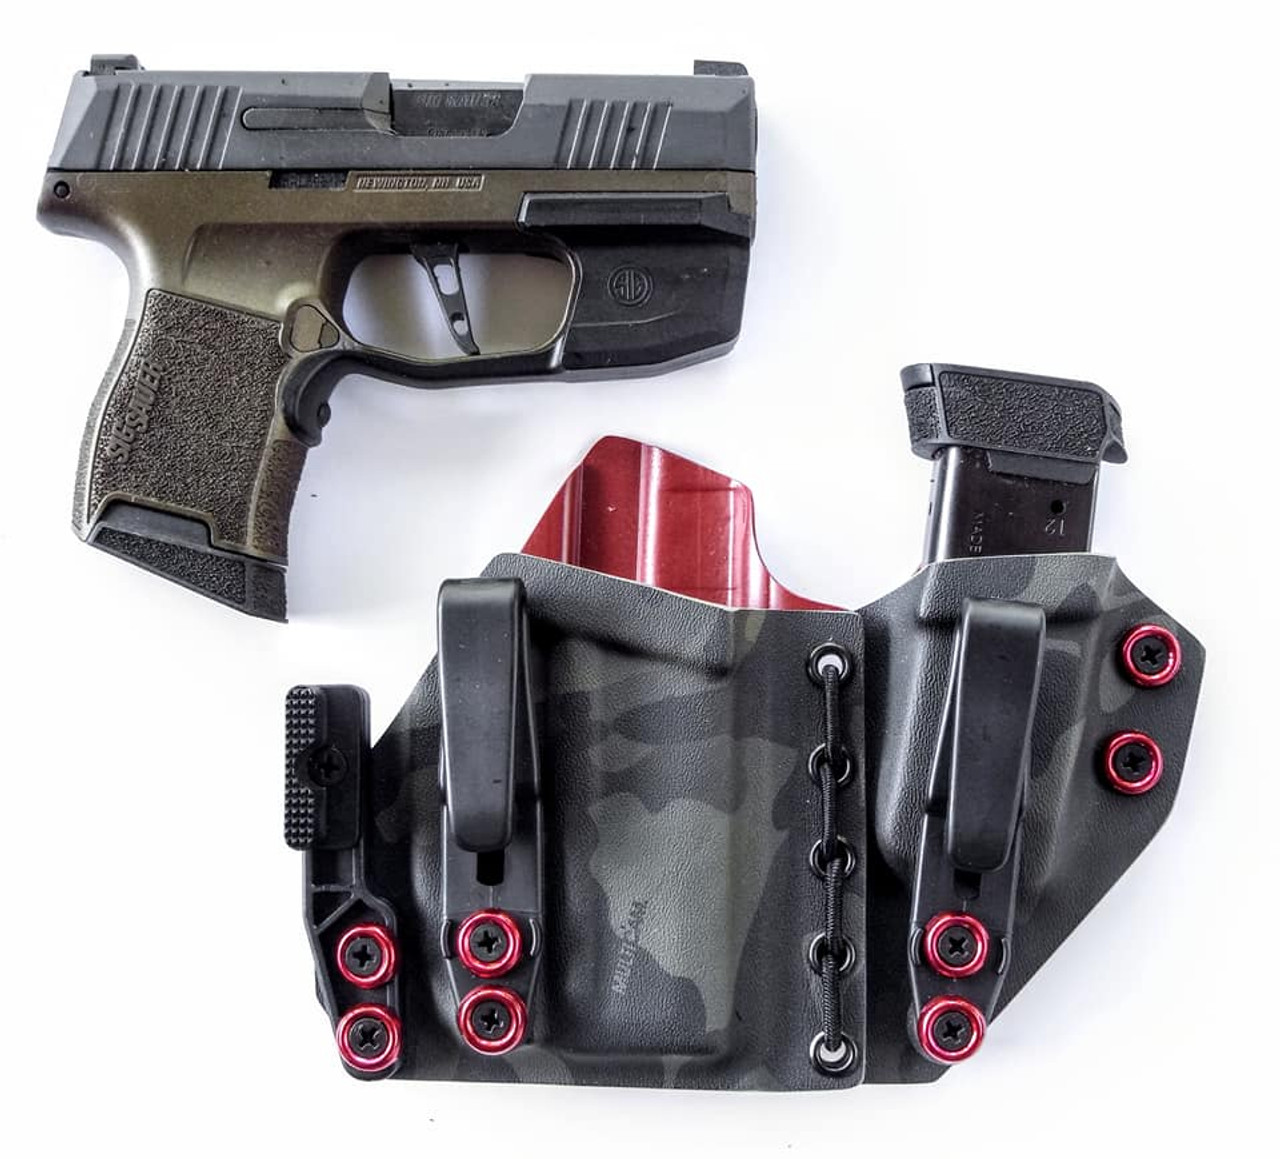 Sig P365 with Foxtrot Light Flexible Appendix Carry Rig Holster